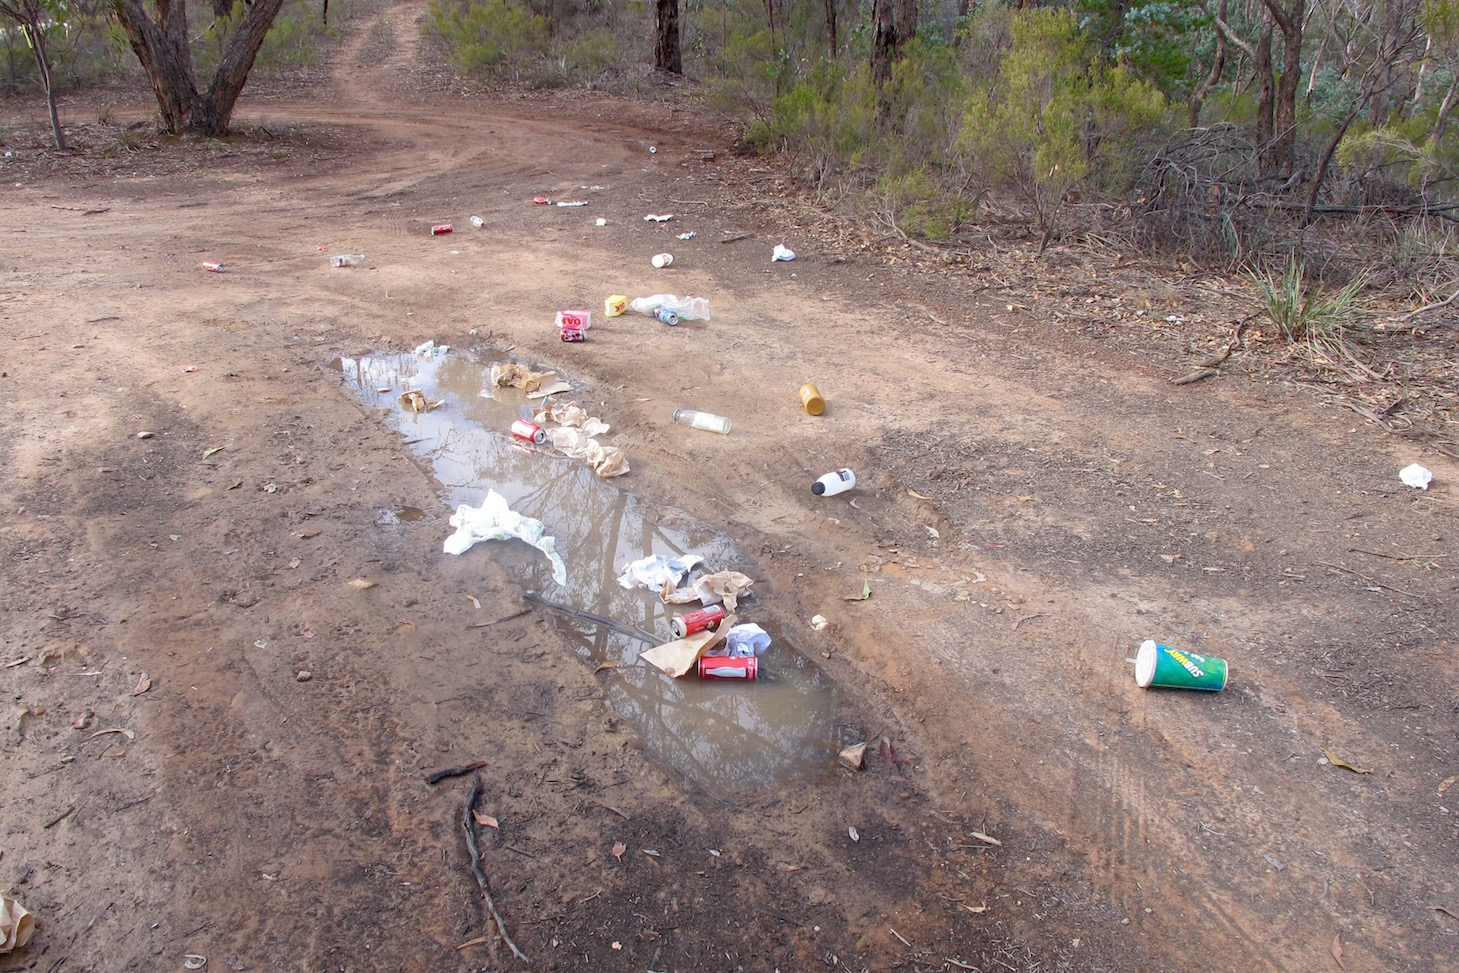 Rubbish strewn over the track opposite Kalimna Point. A couch has been pushed into the bush nearby. This track has to be frequently cleaned by Parks Victoria, at the taxpayers' expense.